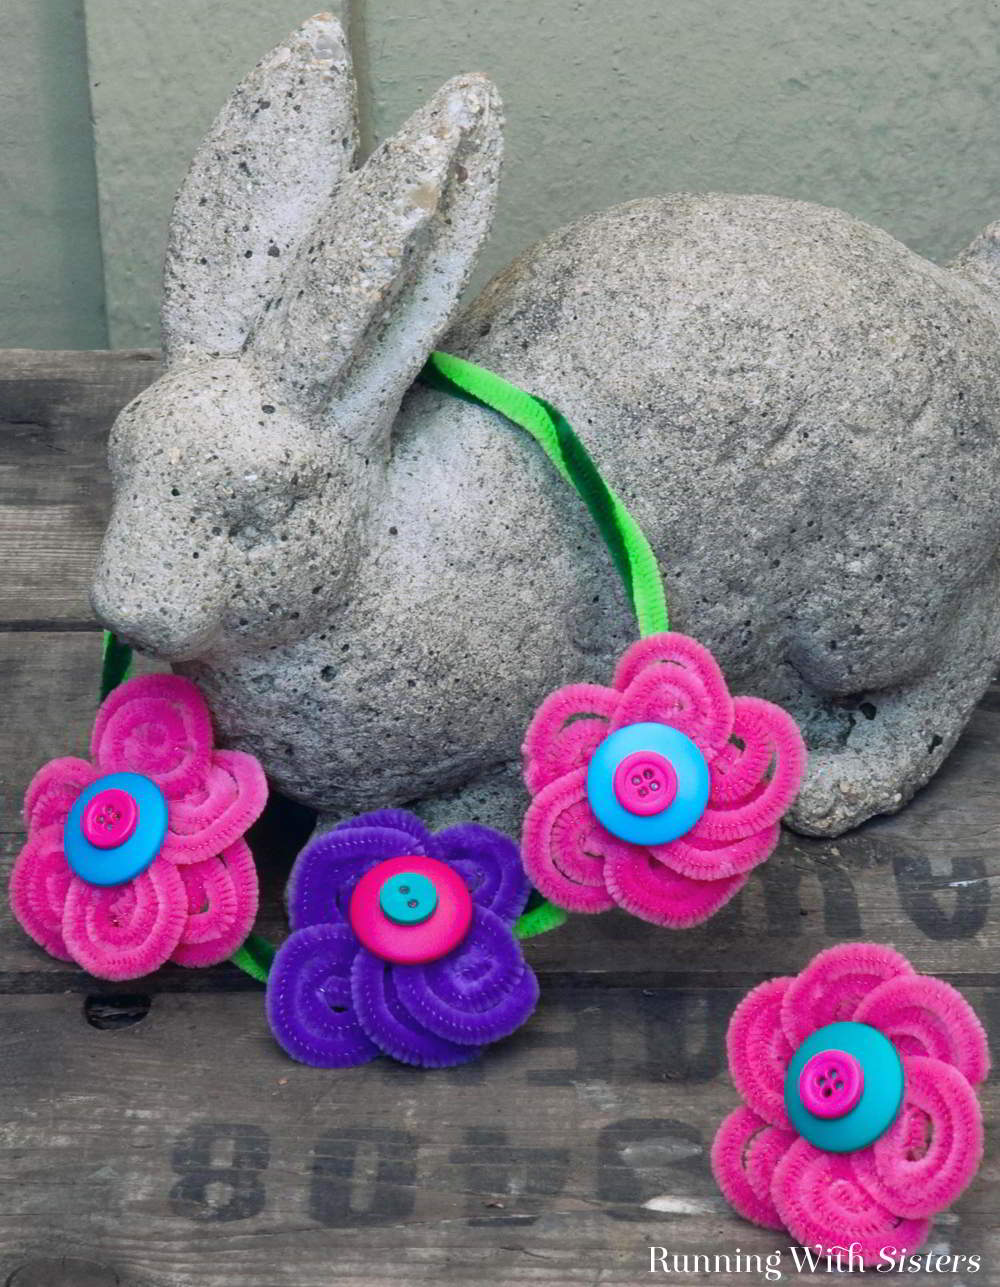 Learn to make pipe cleaner flowers to make your own Button Blossom Ring and Necklace! These chenille stem flowers are a great kid craft!